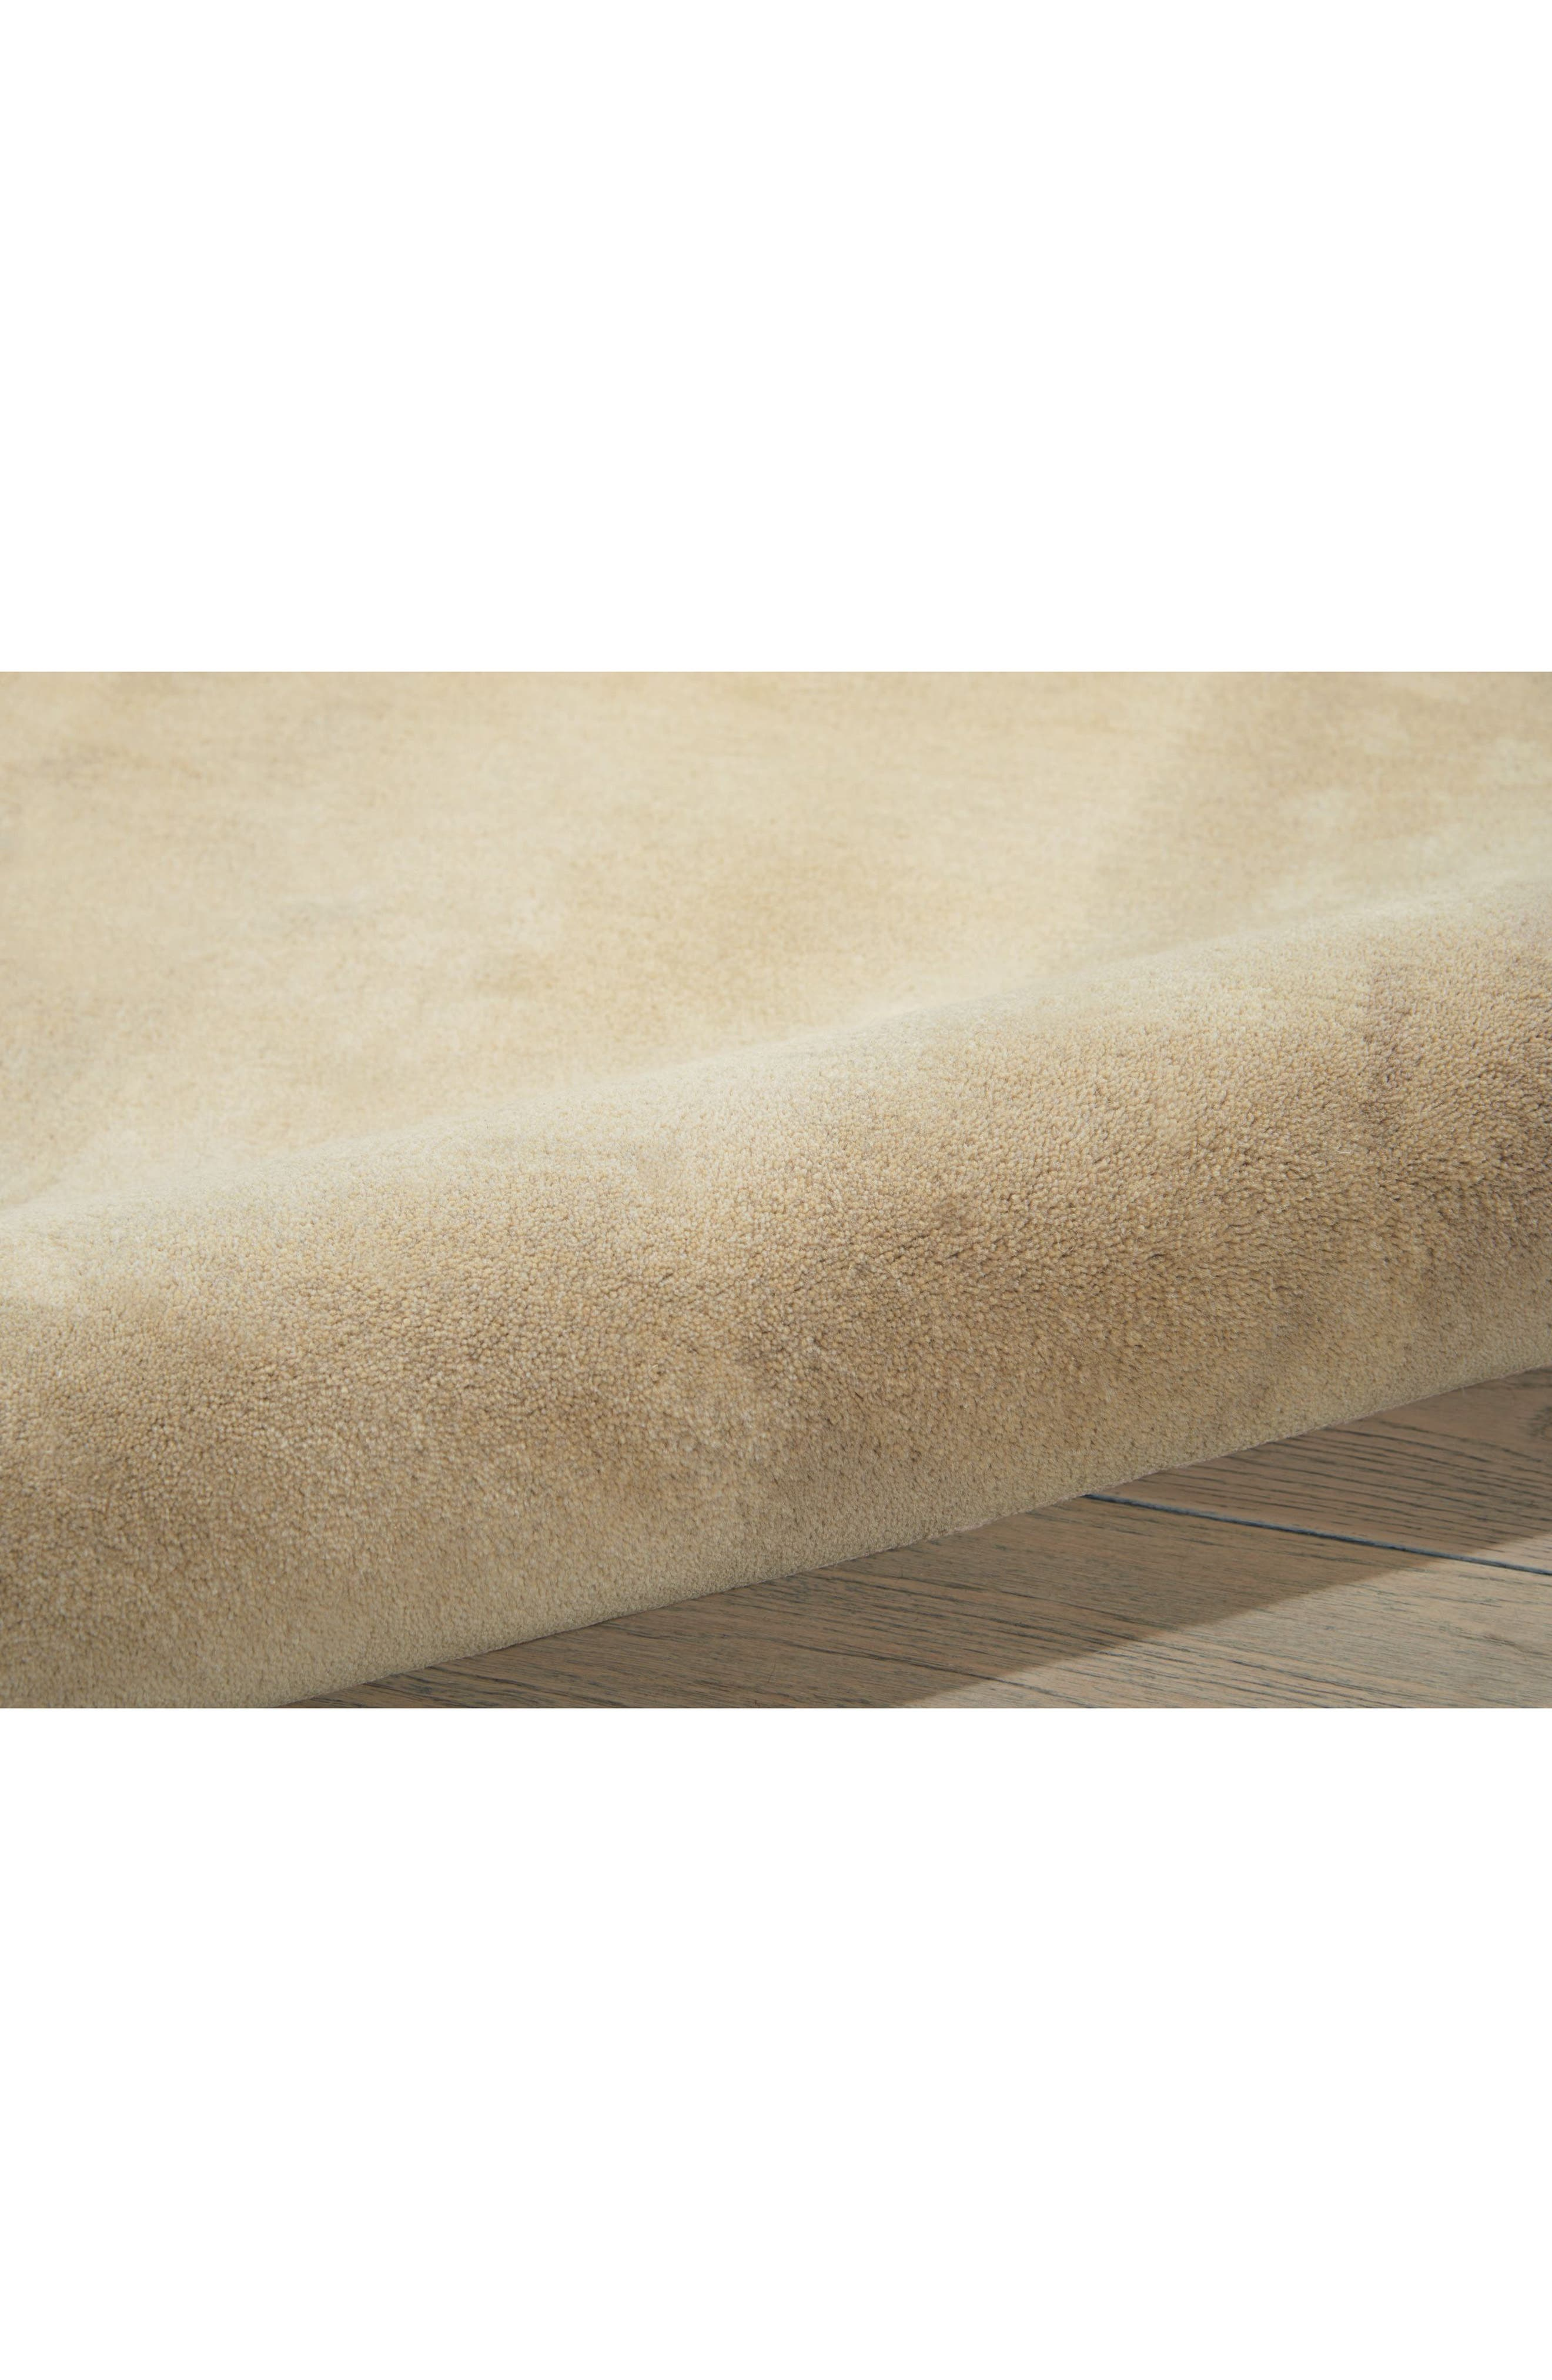 Luster Wash Wool Area Rug,                             Alternate thumbnail 16, color,